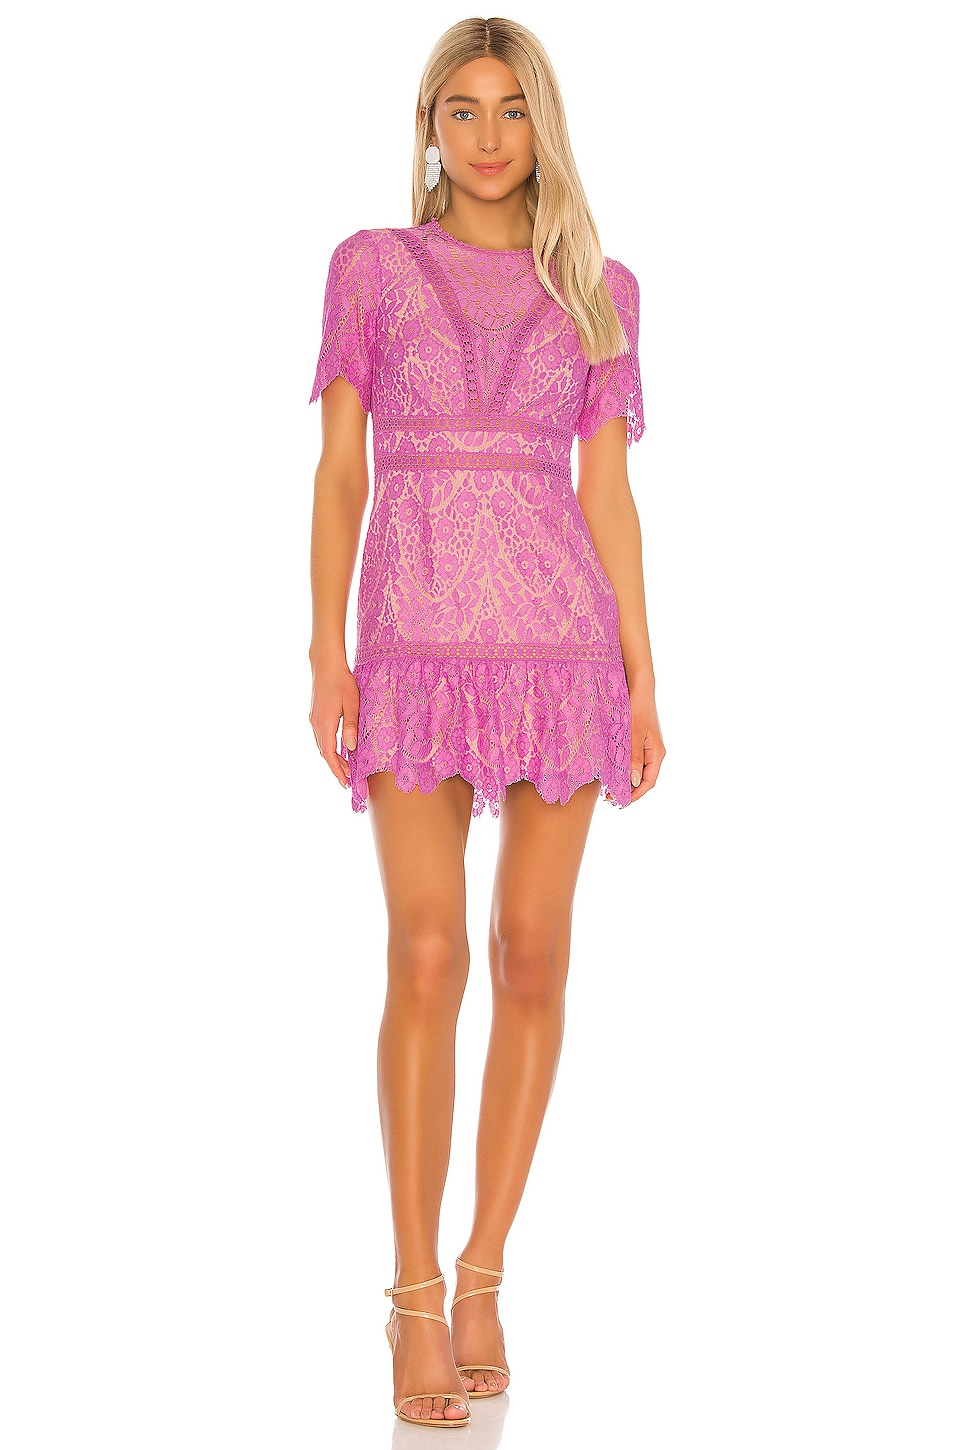 SAYLOR x REVOLVE Darian Dress in Lilac